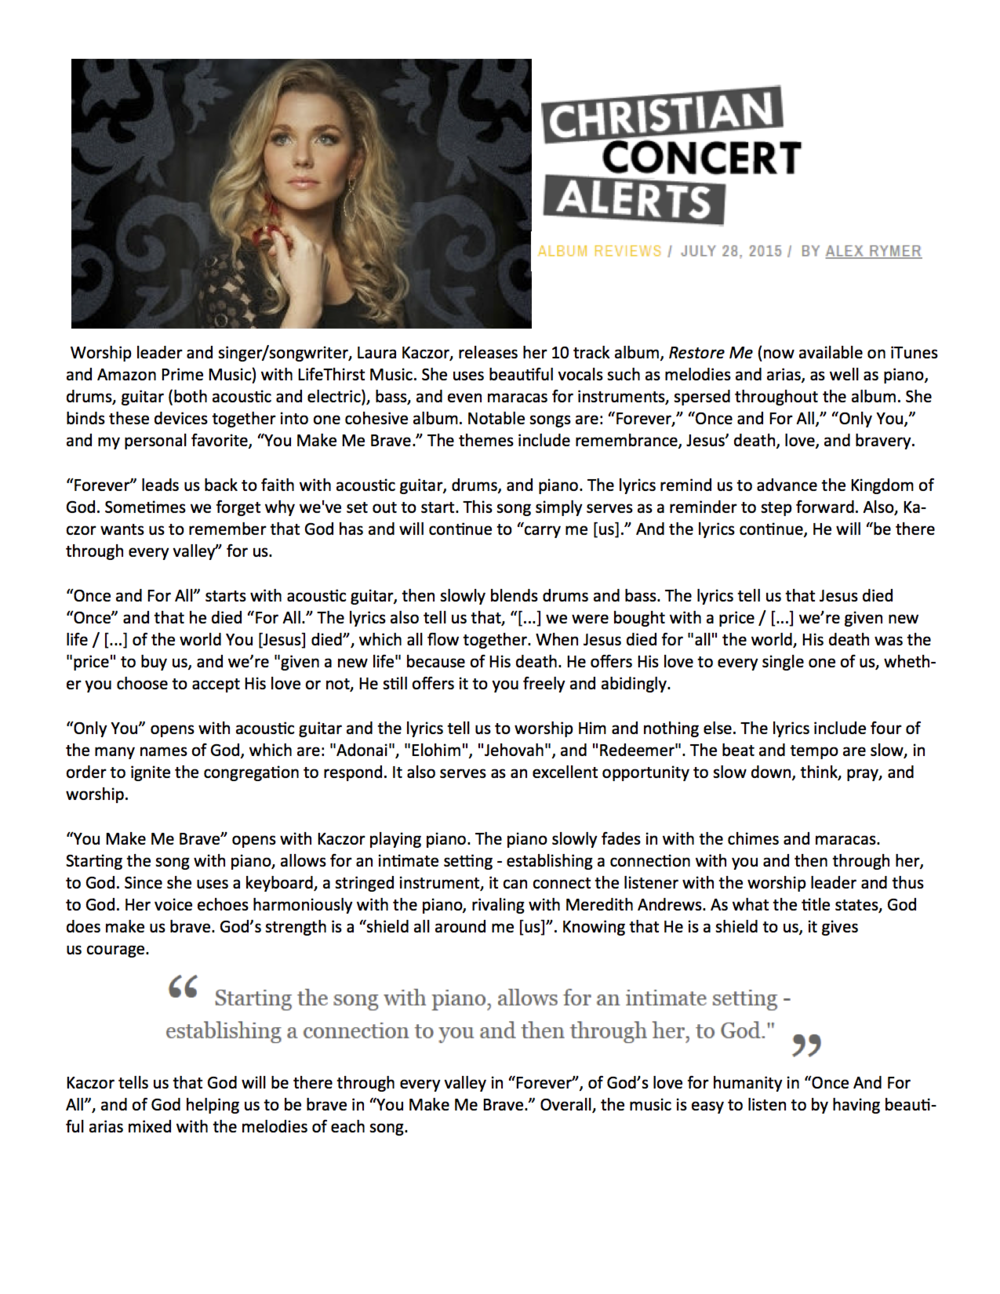 2_Christian Concert Alerts Review - July 28 - 2015 (1).png